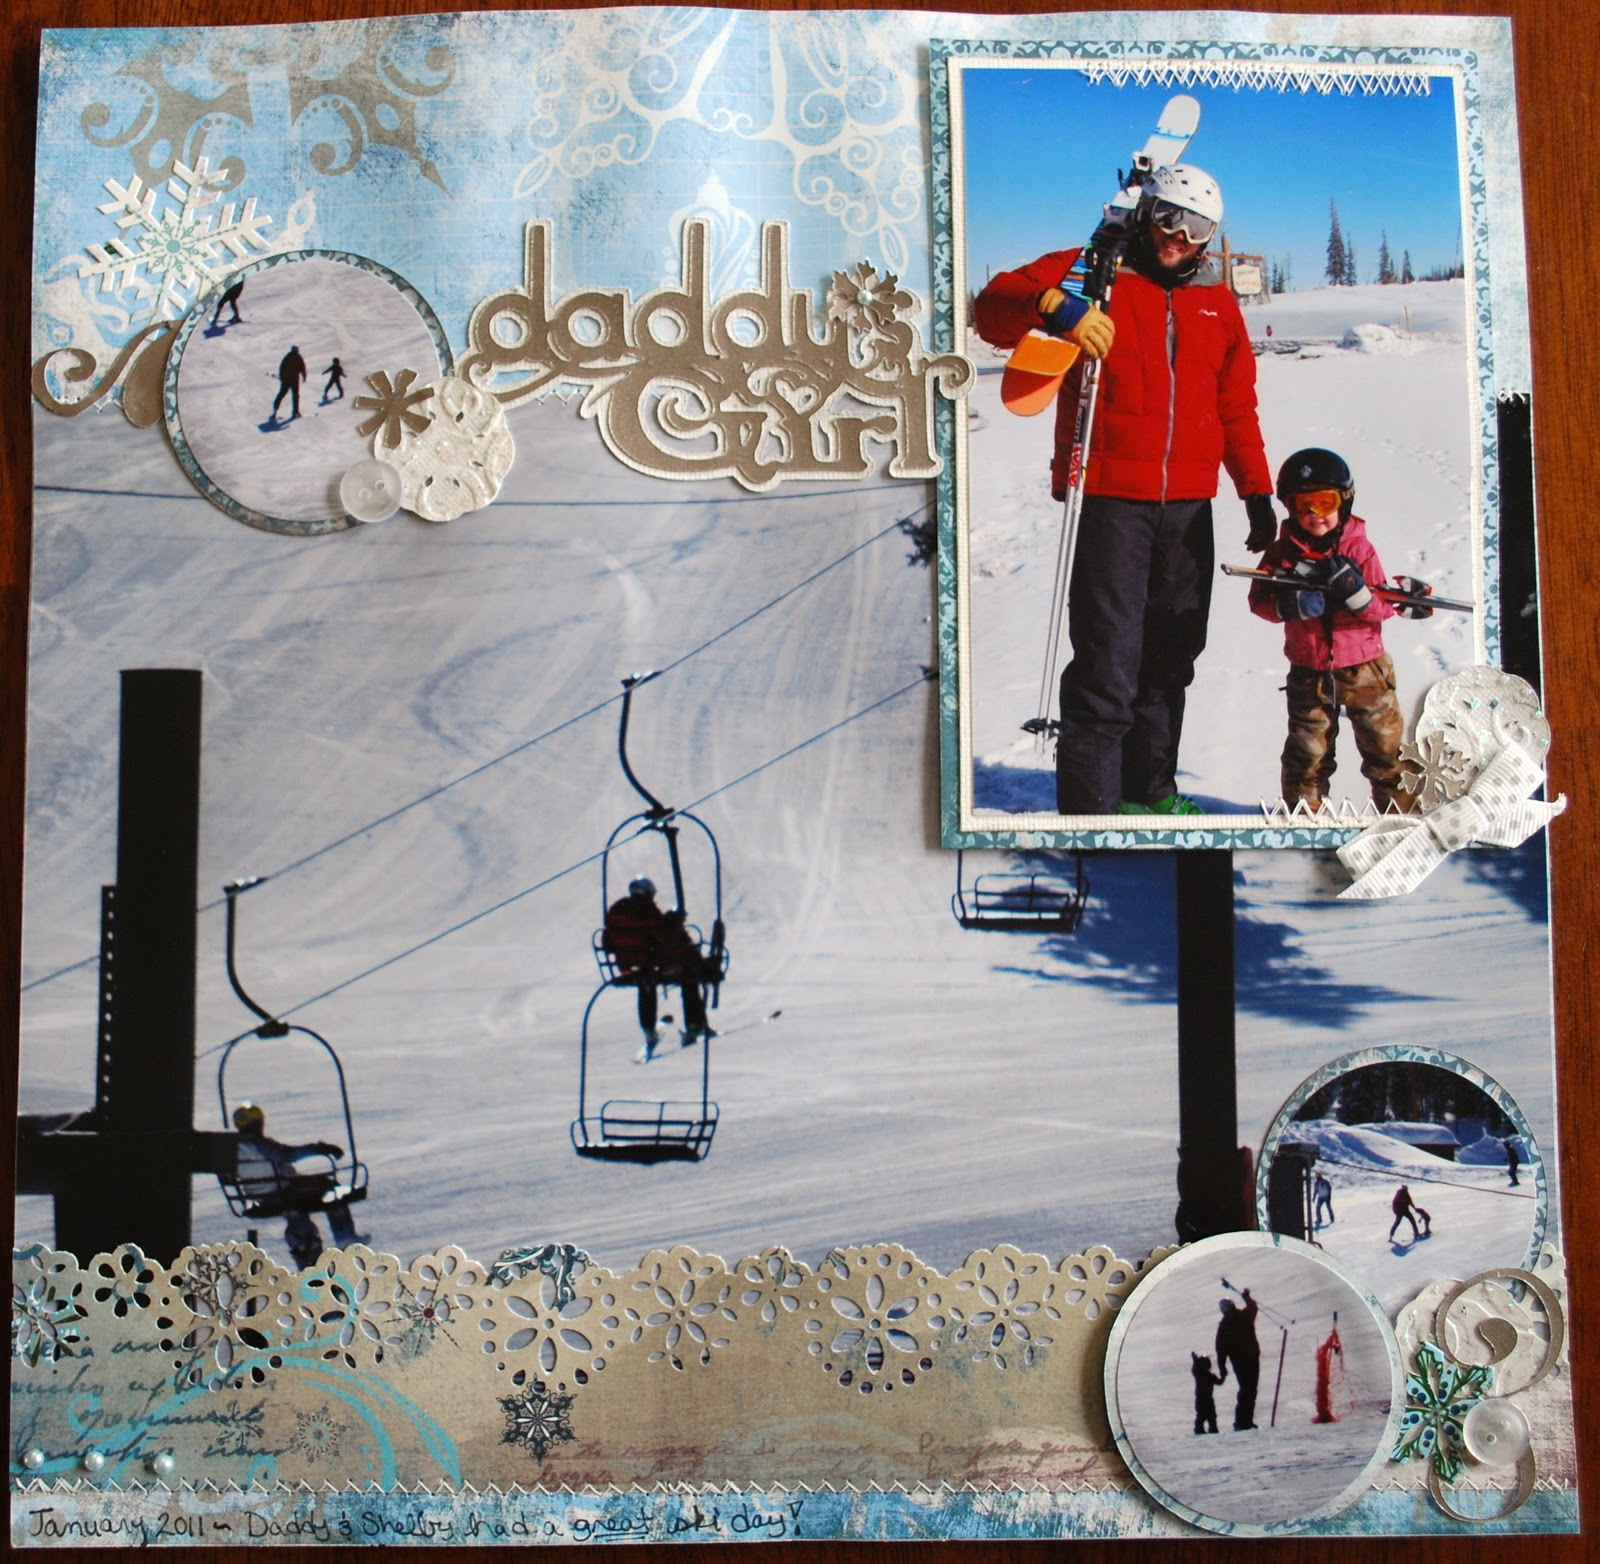 January scrapbook ideas - Just Wanted To Share Some Of My Favorite Scarpbook Pages That I Haven T Shared Yet I Hope You Like Them And Get Some Fun Ideas For Your Pages